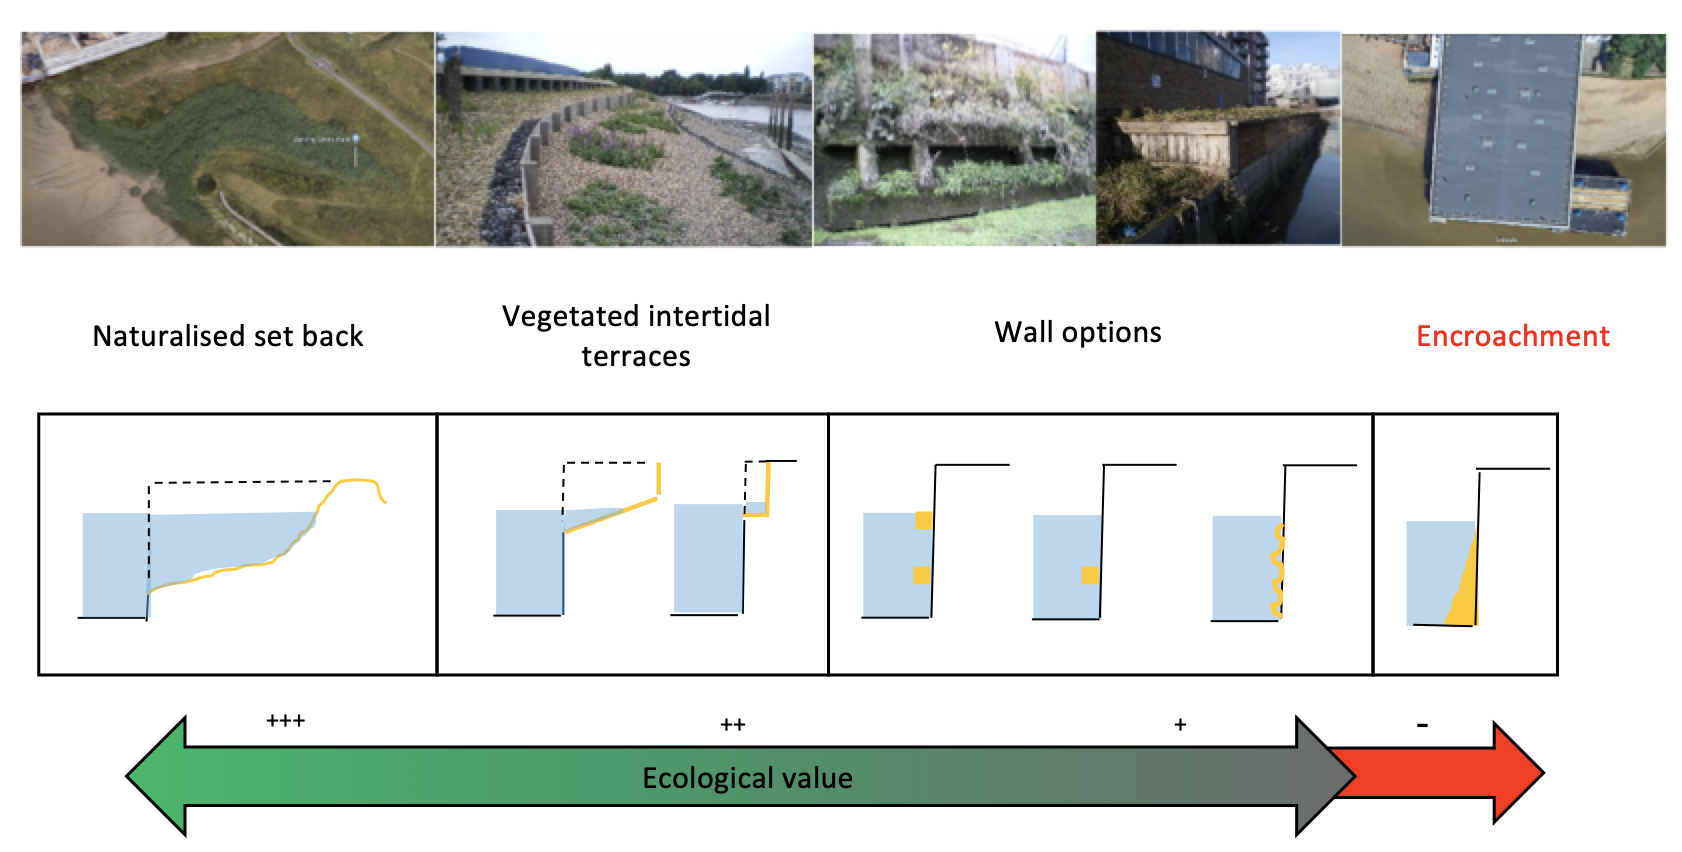 Figure 1: Showing cross sections of typical designs (with photographic examples) in order of ecological value.